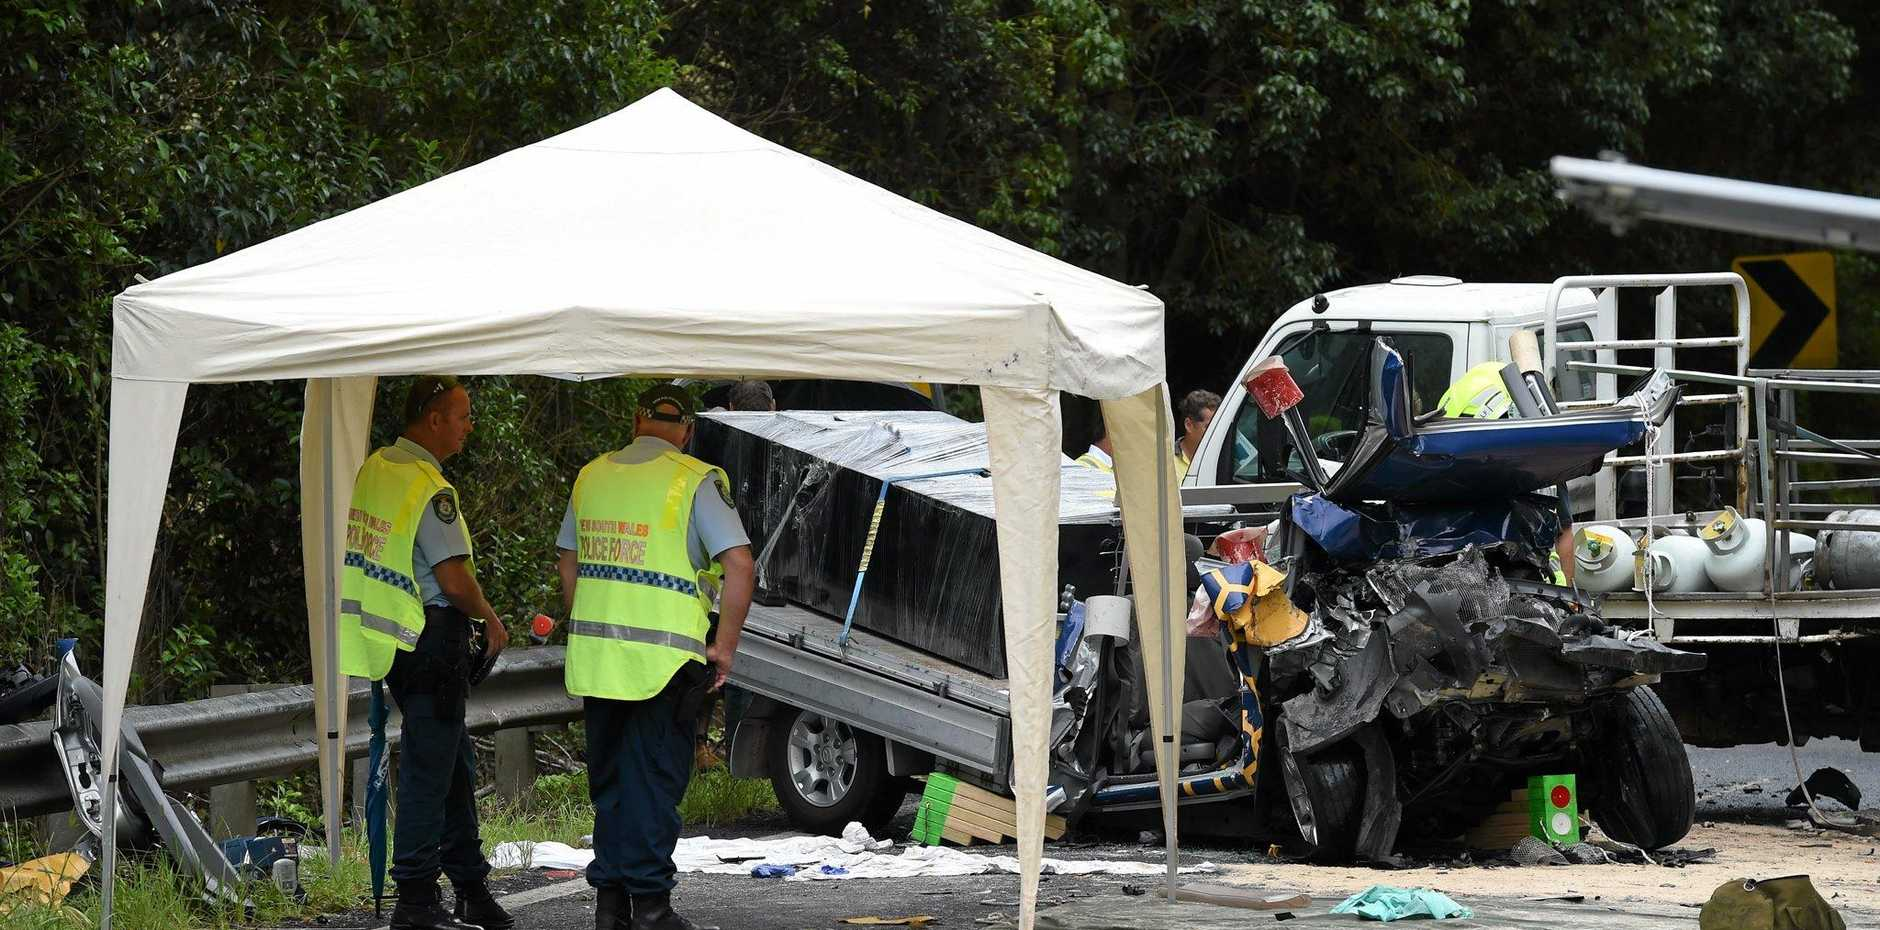 The brother of the man involved in this horrific collision near Bexhill last week has shared his gratitude to emergency services and the community for rapid response and support.